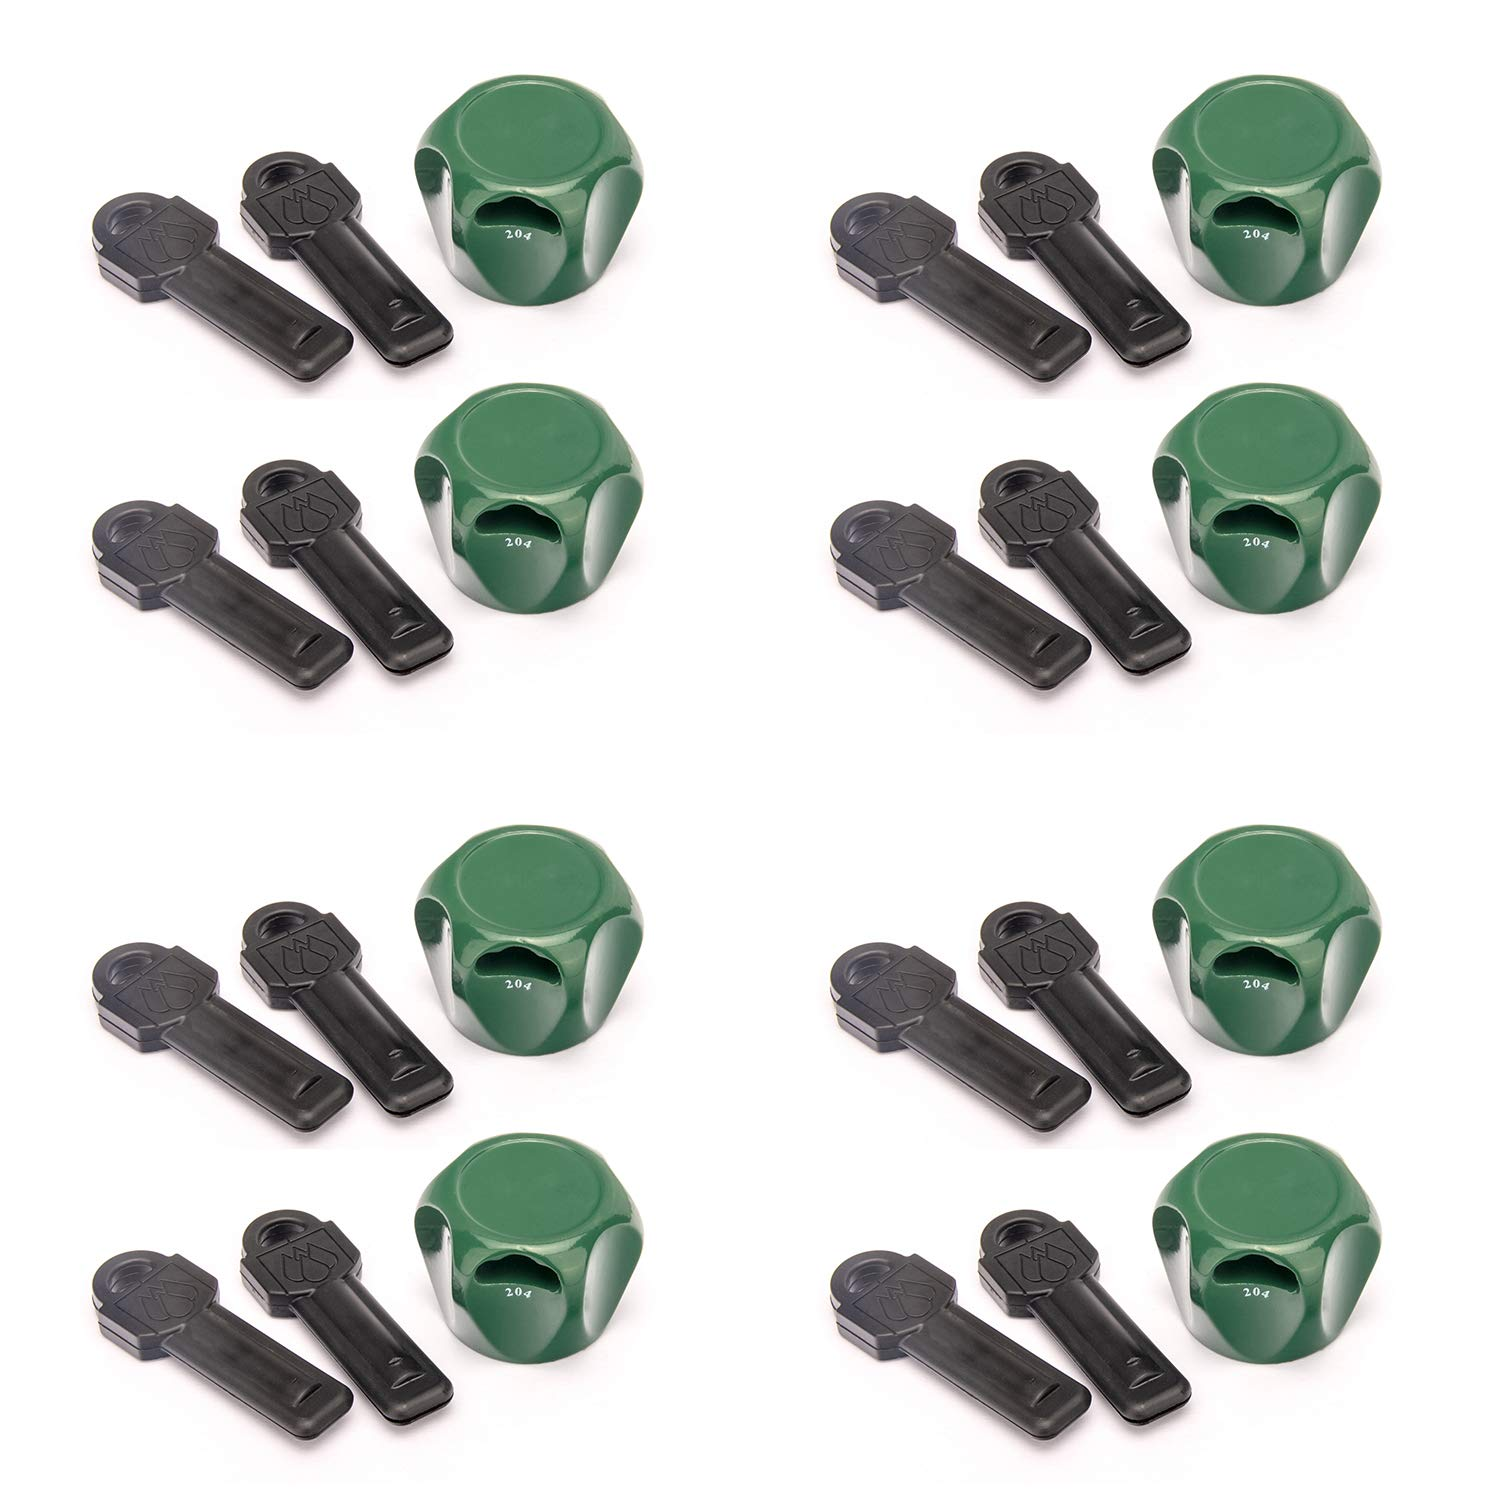 Keyed The Same Promotes Water Conservation Faucet Lock II Flow Security Systems Prevents Water Theft /& Secures Outdoor Taps Fits Most Outdoor Hose Bibbs Magnetic Key FSS 500 4 Pack Inc.